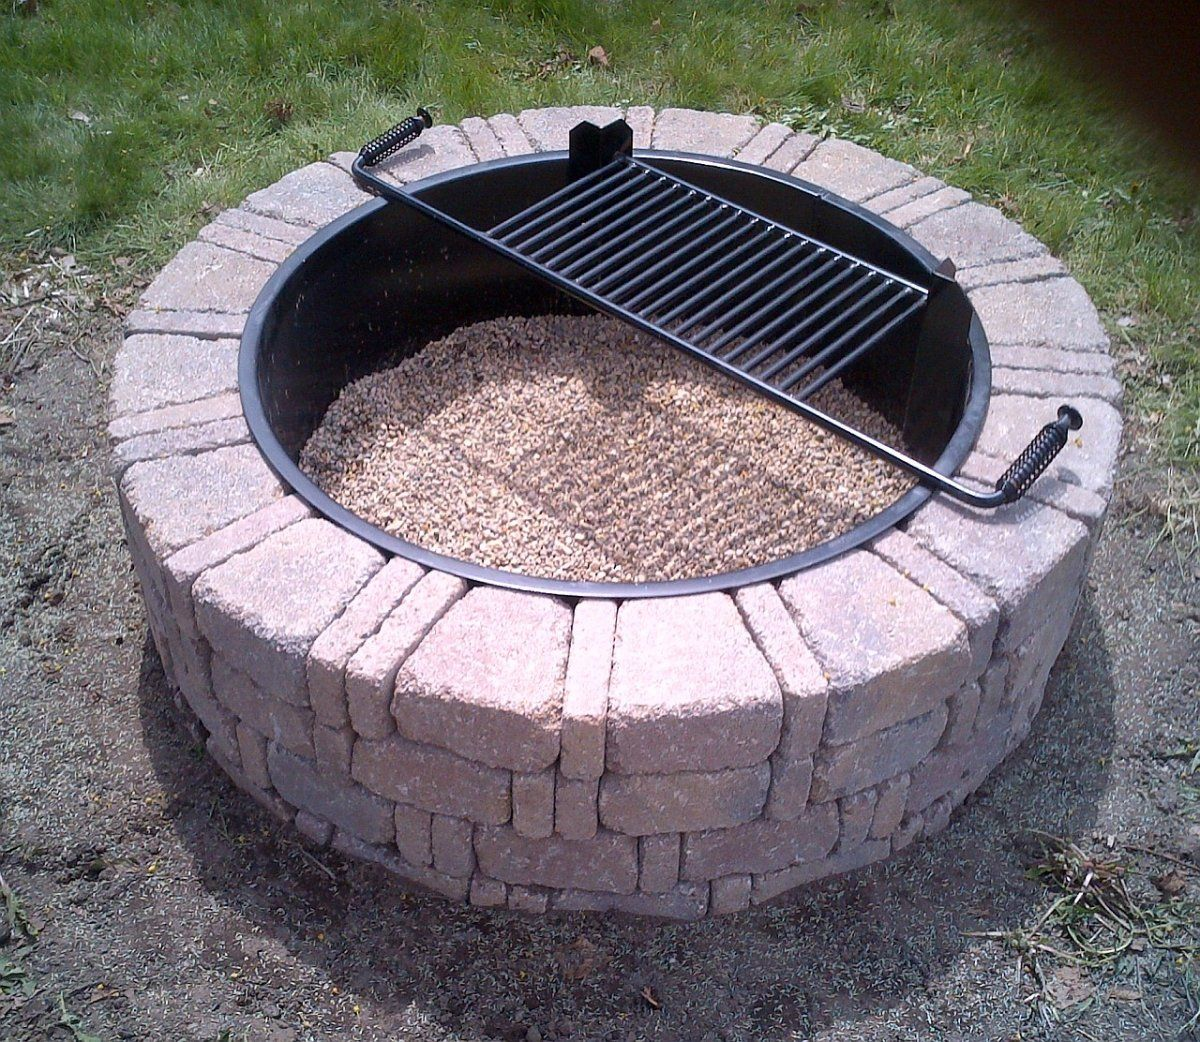 Steel Insert For Ring Fire Pit Fireplace Design Ideas Steel Fire Pit Ring Portable Fire Pits Fire Pit Insert